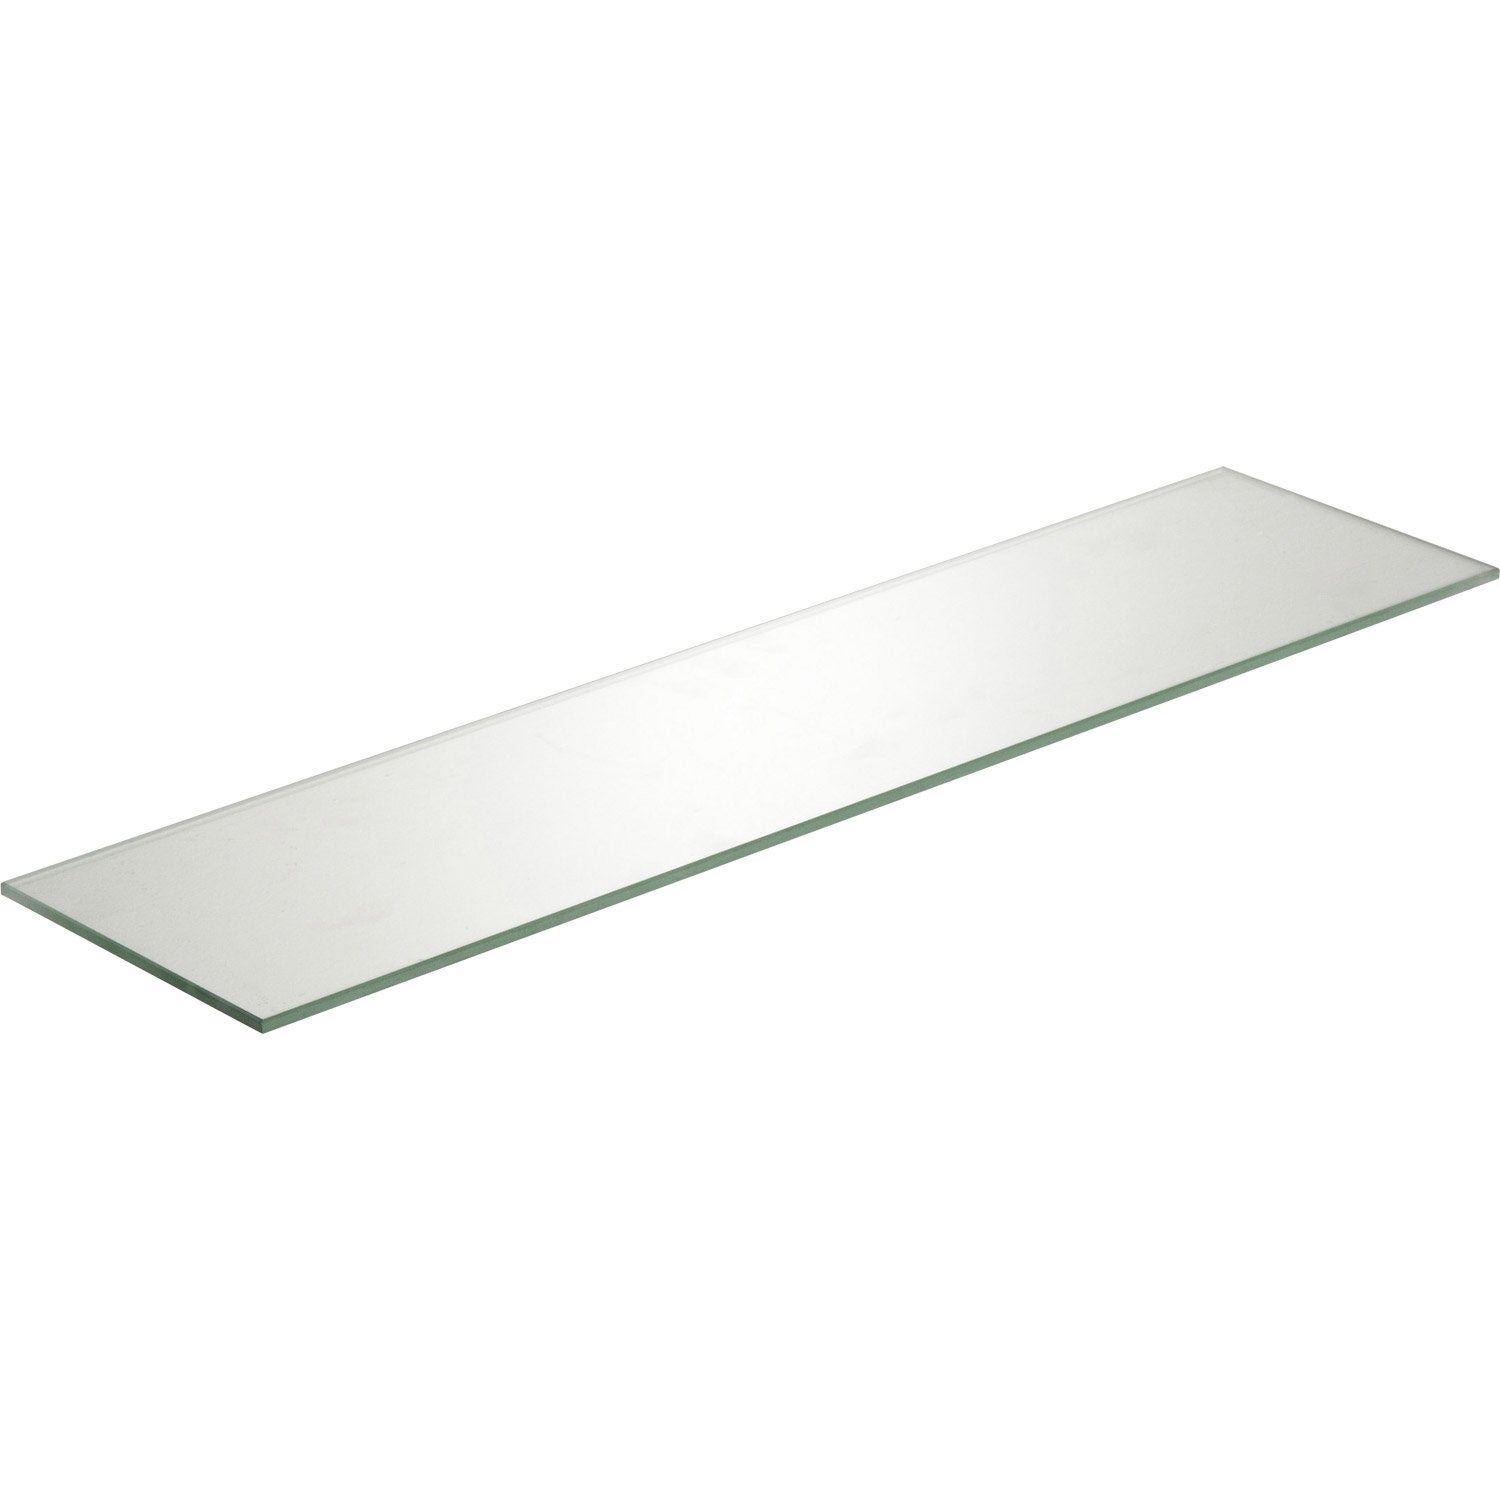 Etag re murale verre transparent l 60 x p 15 cm ep 6 mm - Tablette verre leroy merlin ...